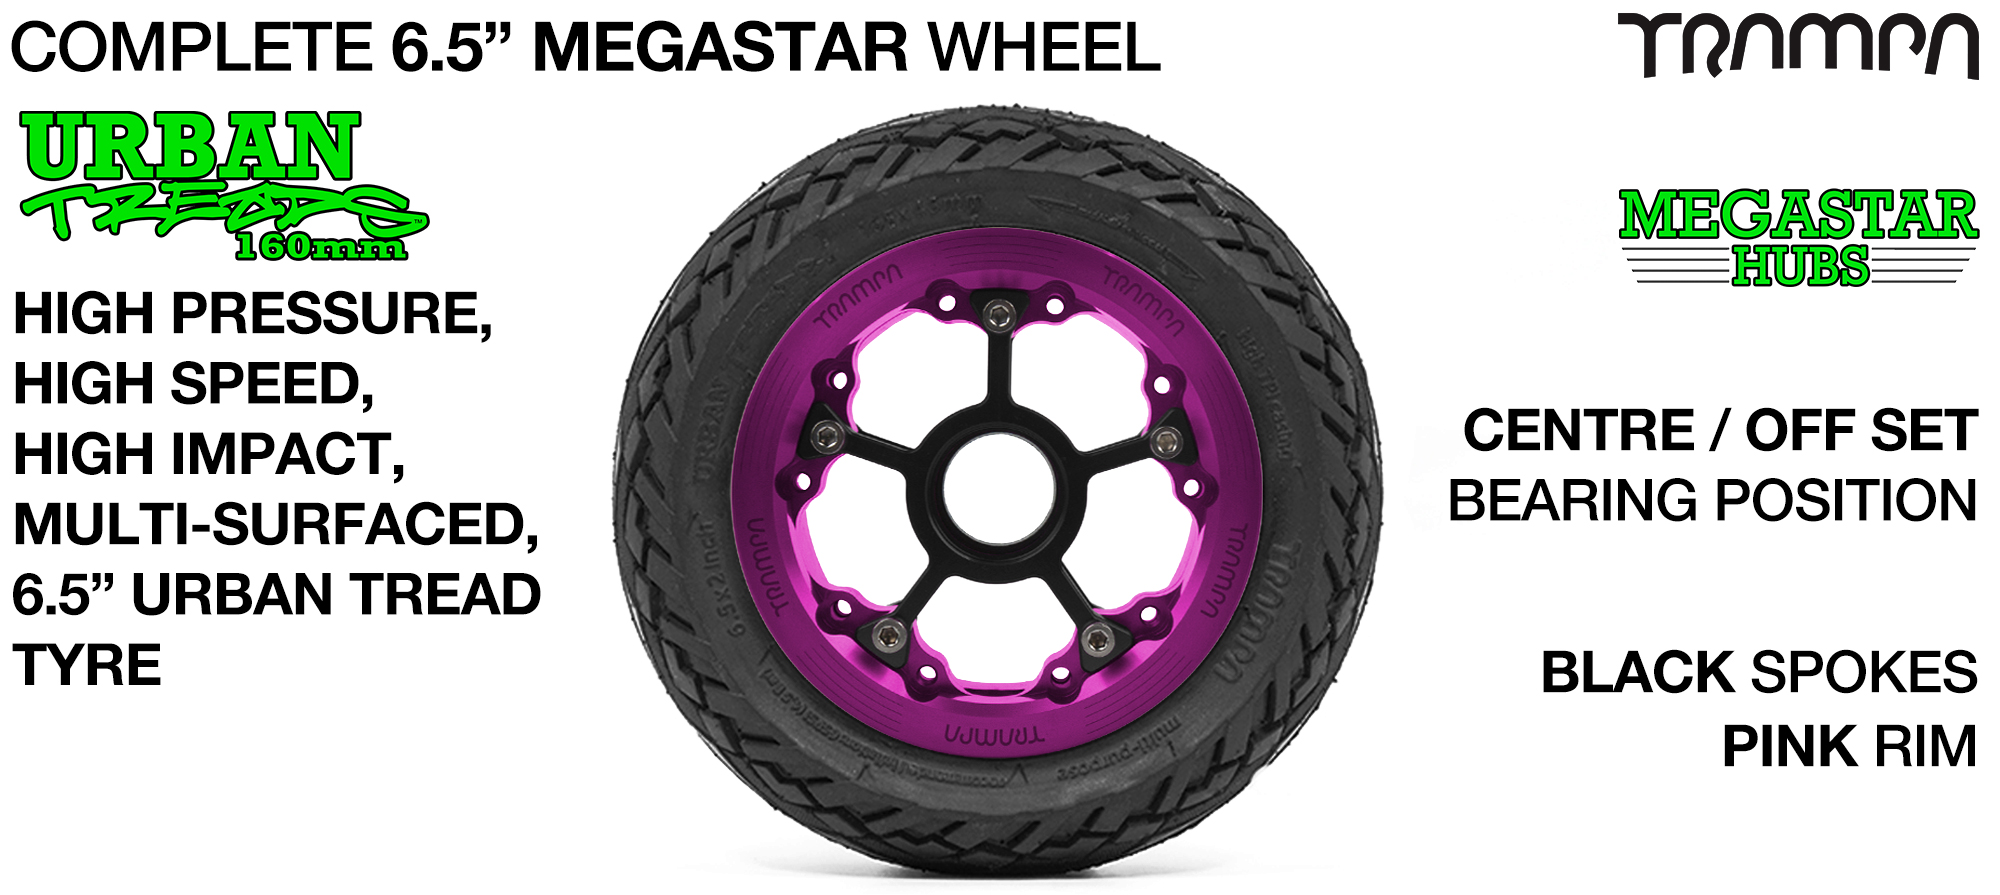 PINK MEGASTAR Rims with BLACK Spokes & 6.5 Inch URBAN Treads Tyres